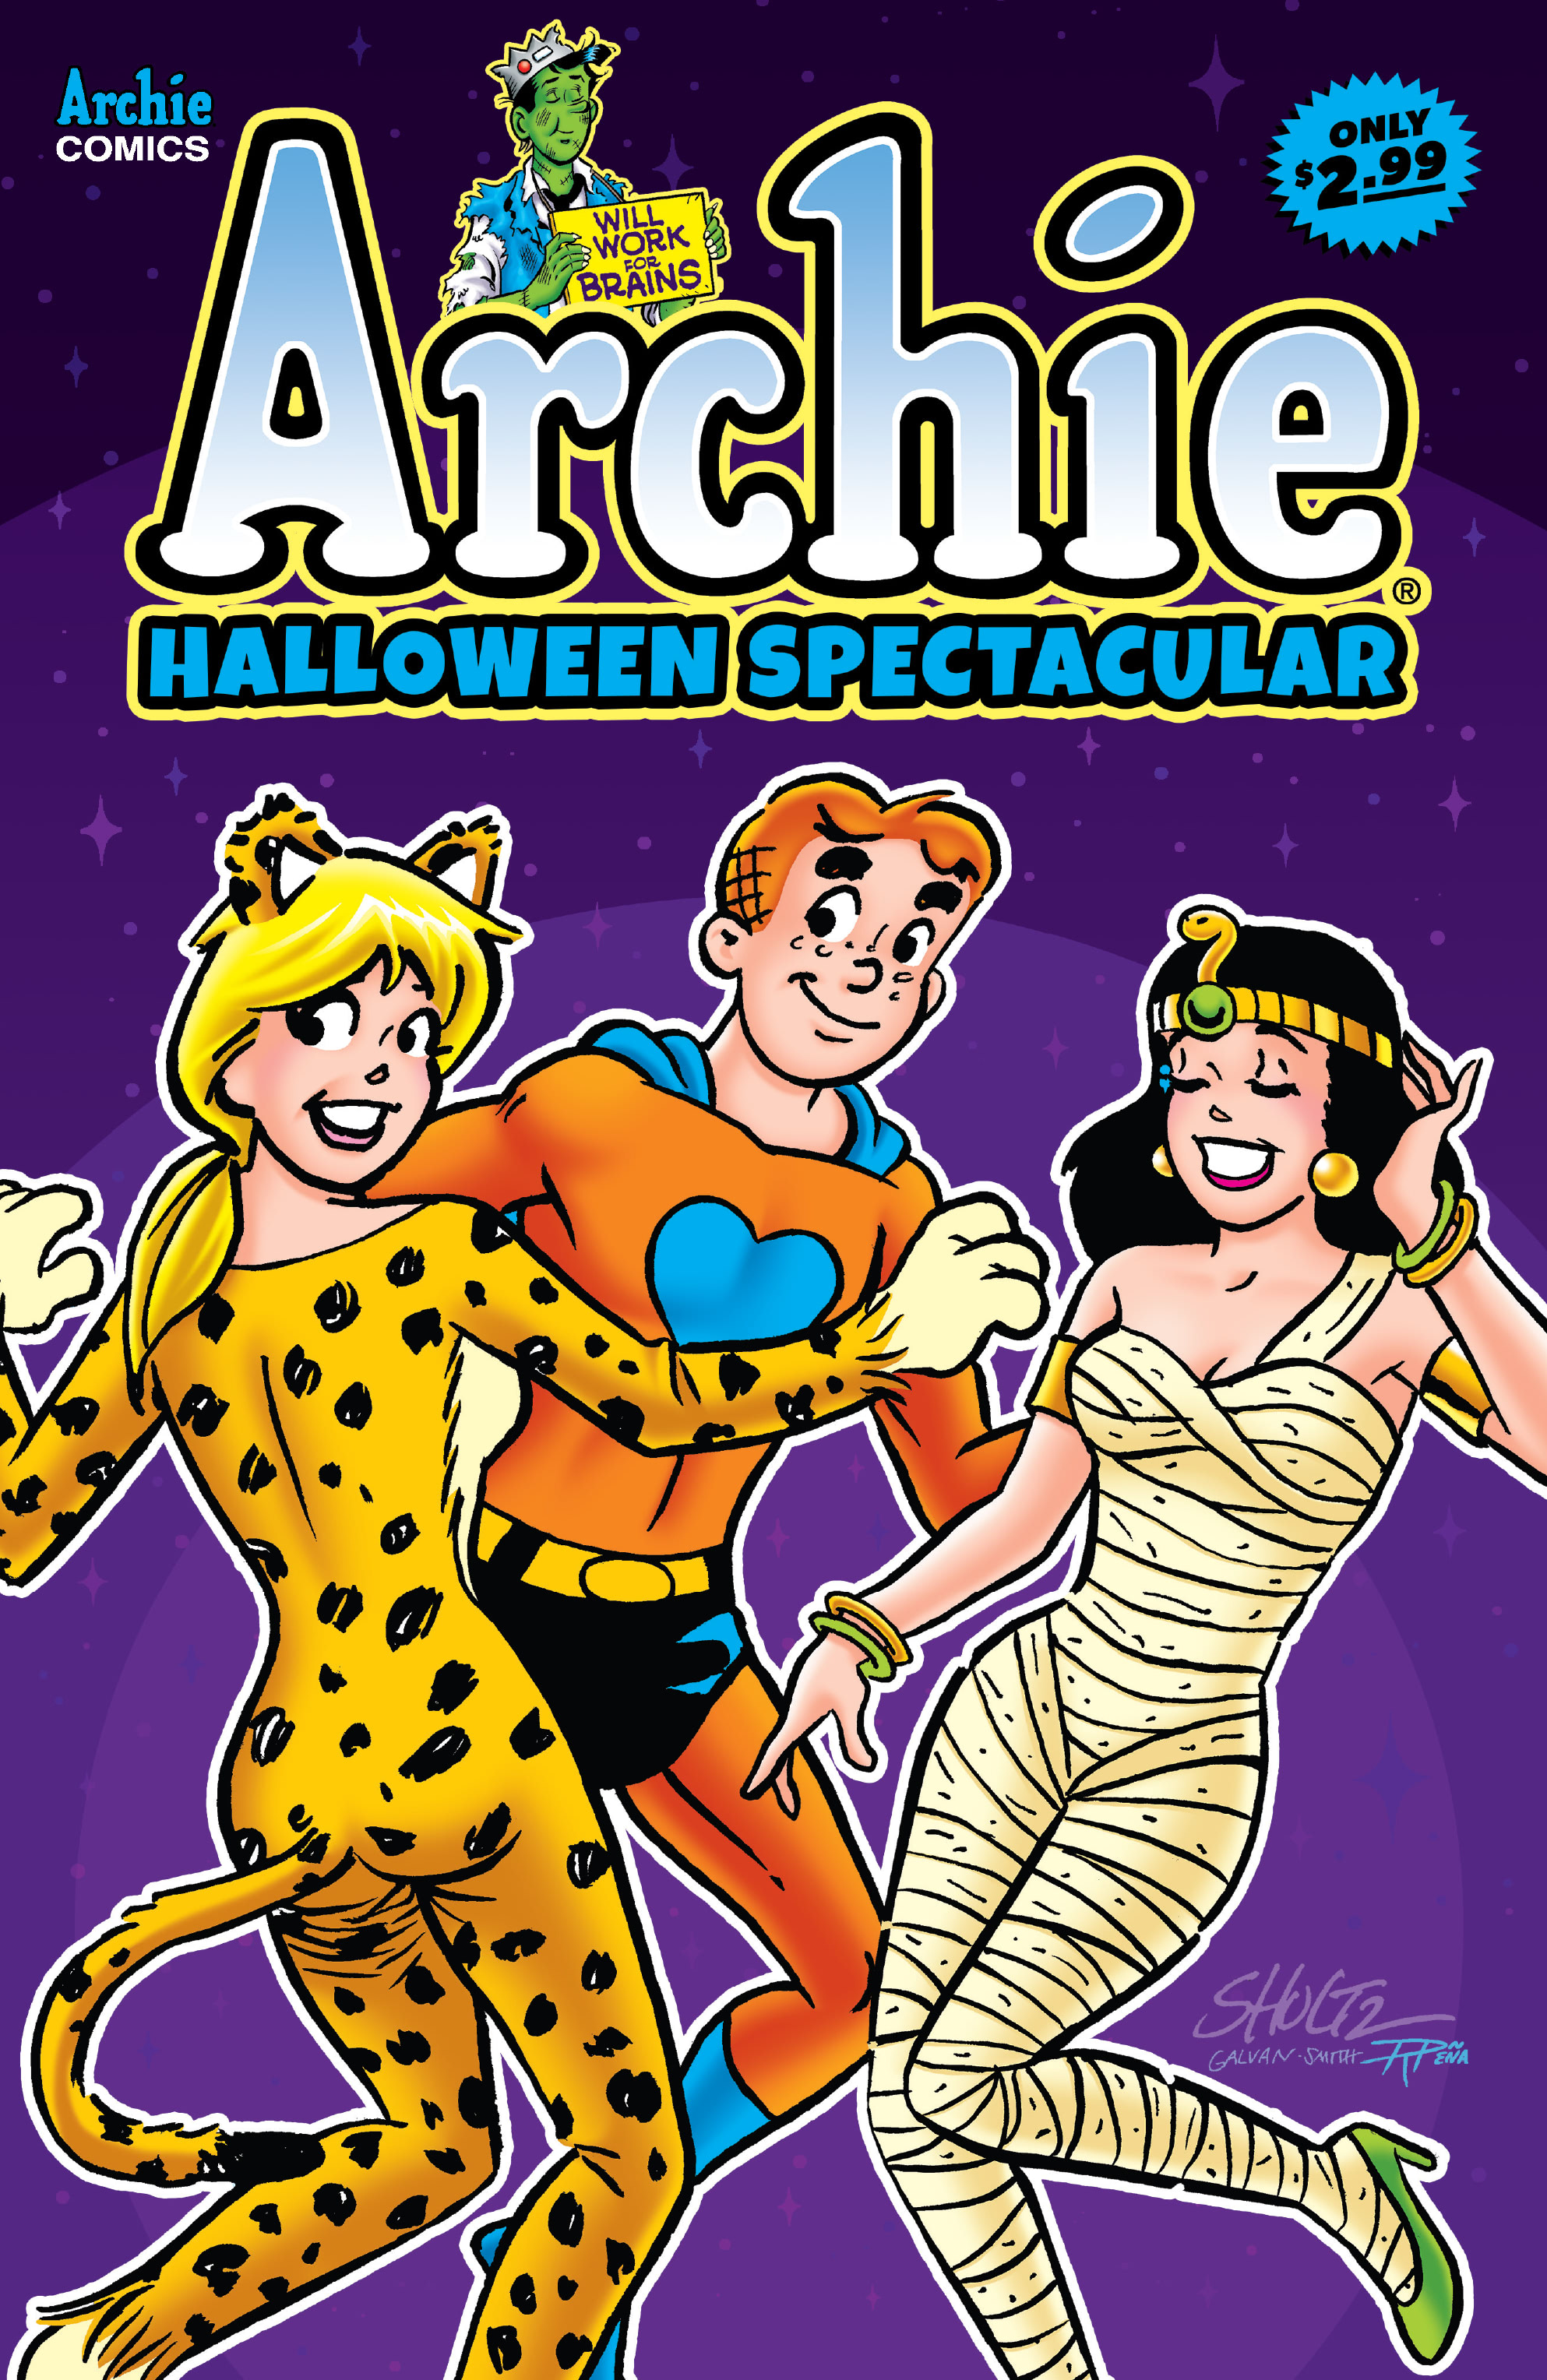 Archie Halloween Spectacular 2020 Archie Halloween Spectacular (2020) Chapter 1   Page 1